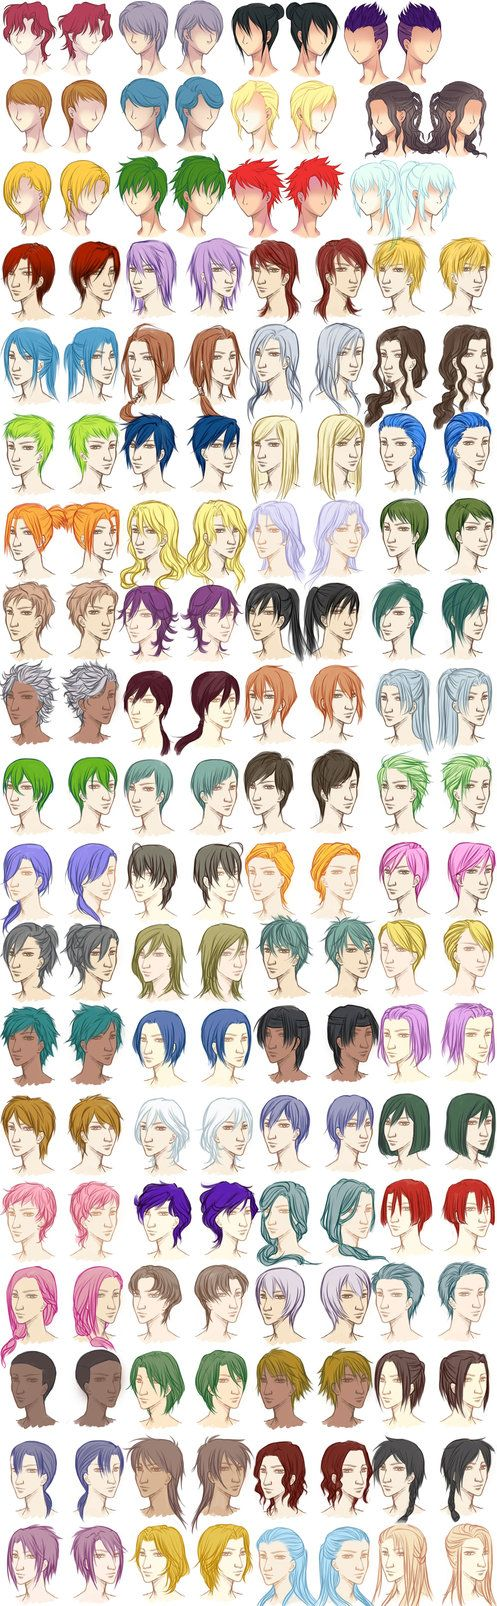 Male Hairstyle Reference Sheet By Dawniechi On Deviantart Art